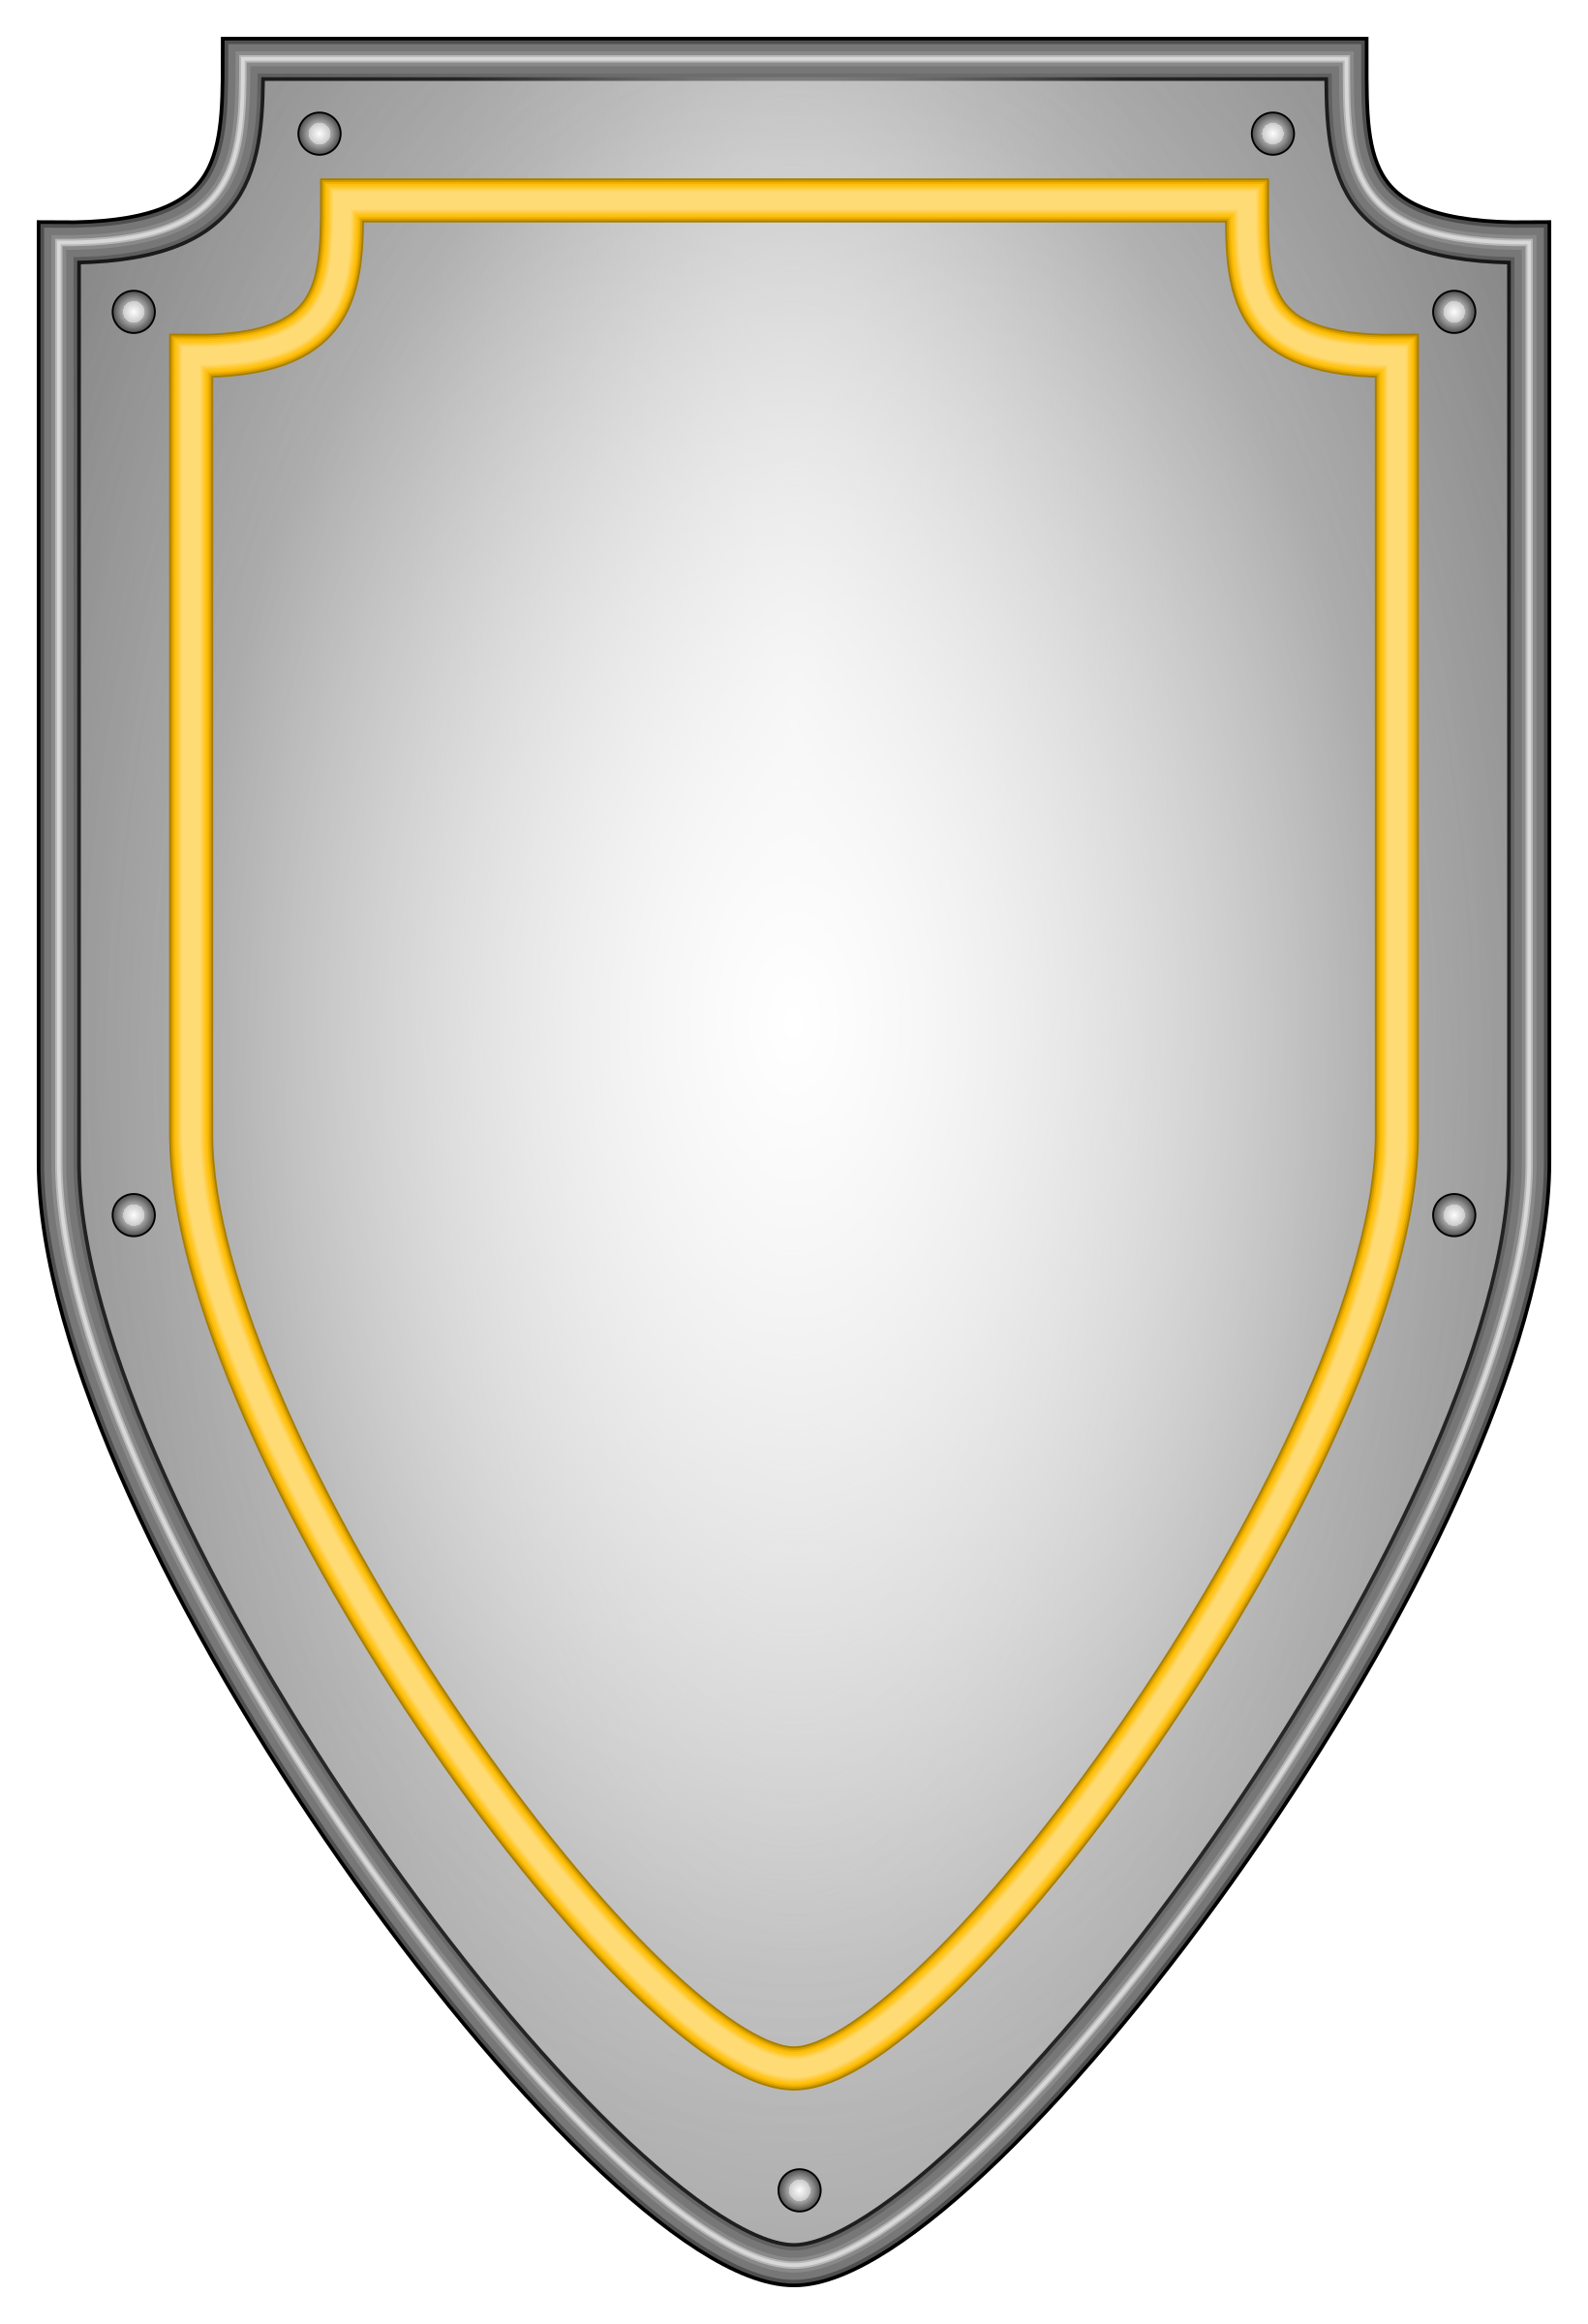 Knights clipart sheild. Security shield png transparent